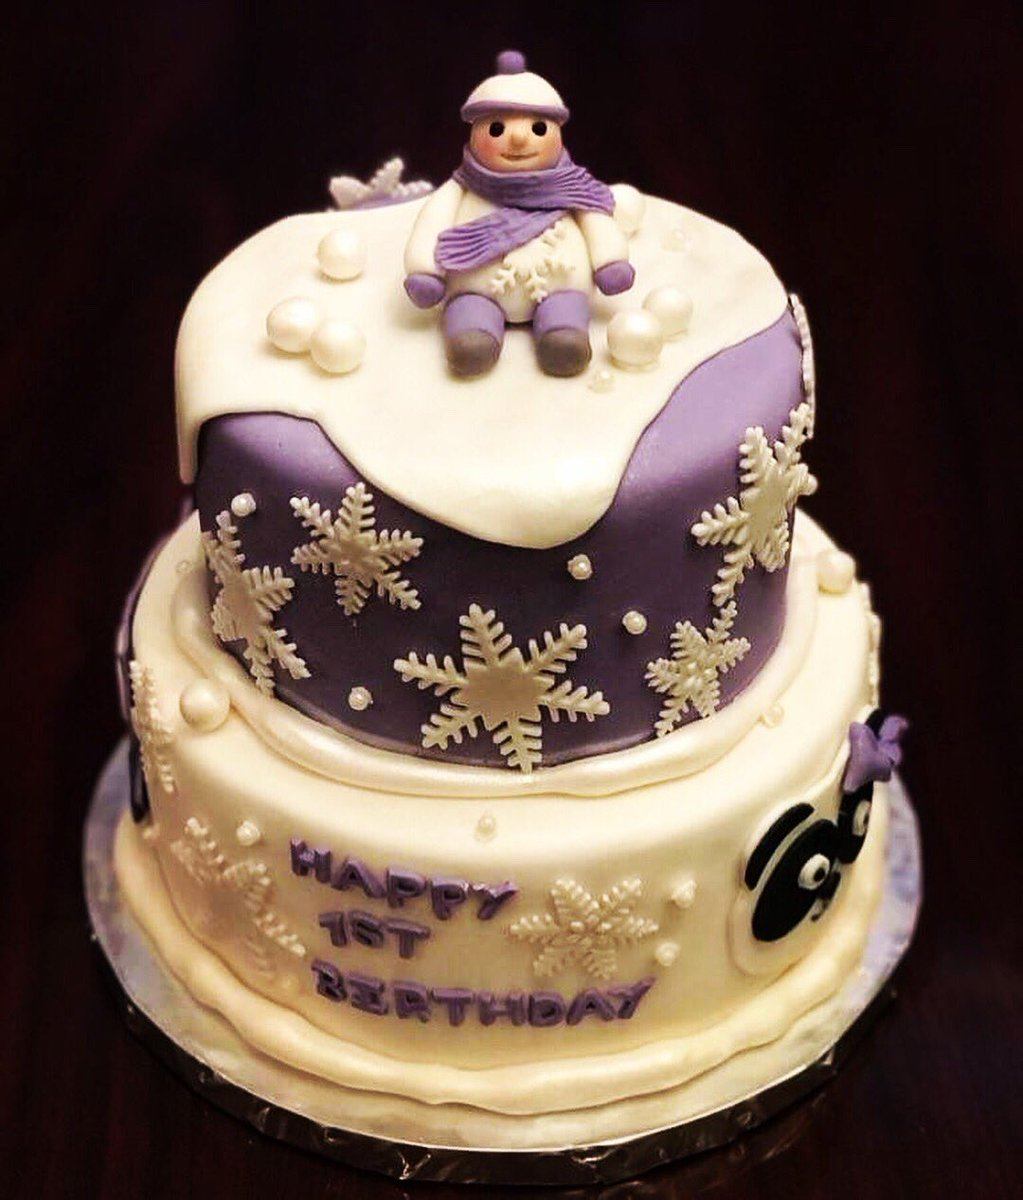 Outstanding Filled Cakes On Twitter The Snow Never Bothered Me Anyway Funny Birthday Cards Online Elaedamsfinfo